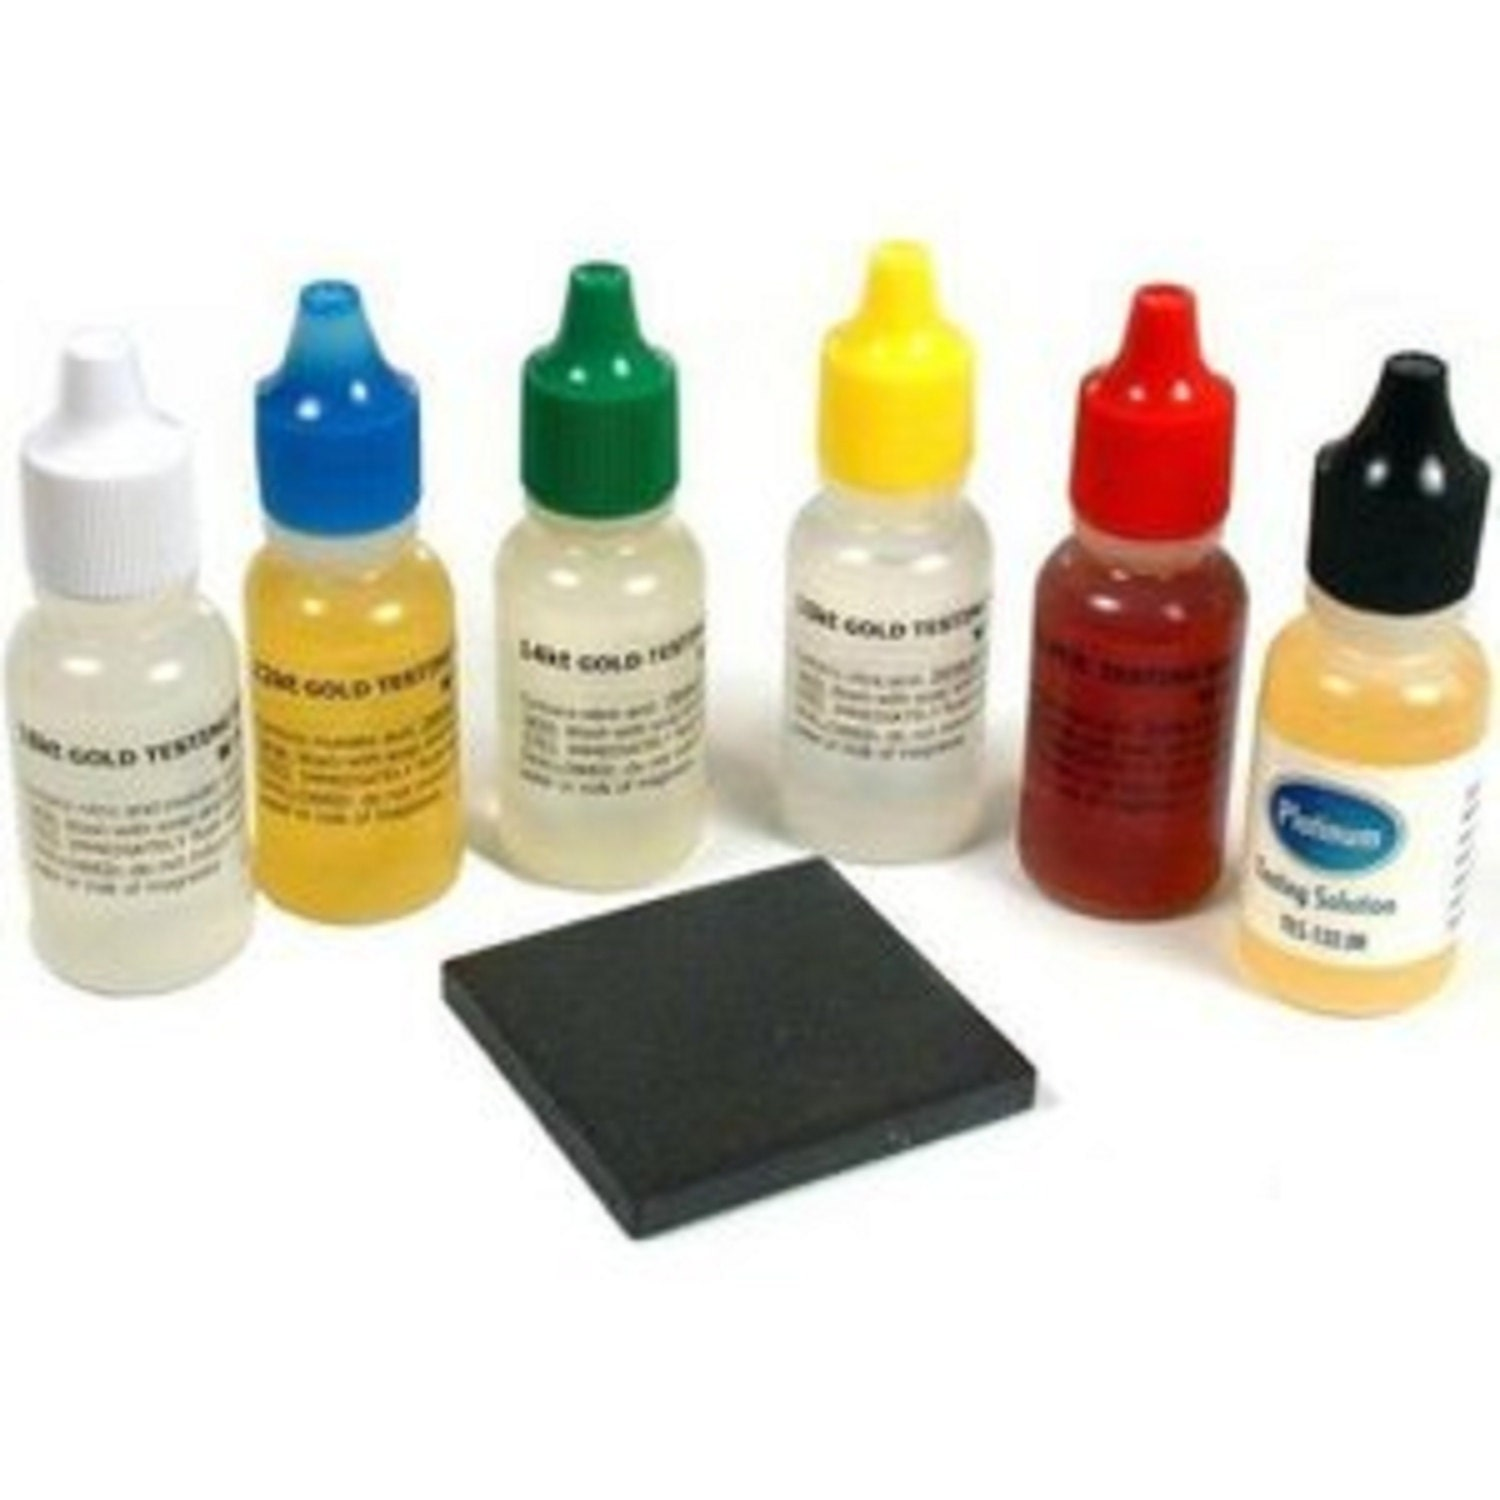 Gold Tester New : New gold testing acid jewelry test kit k